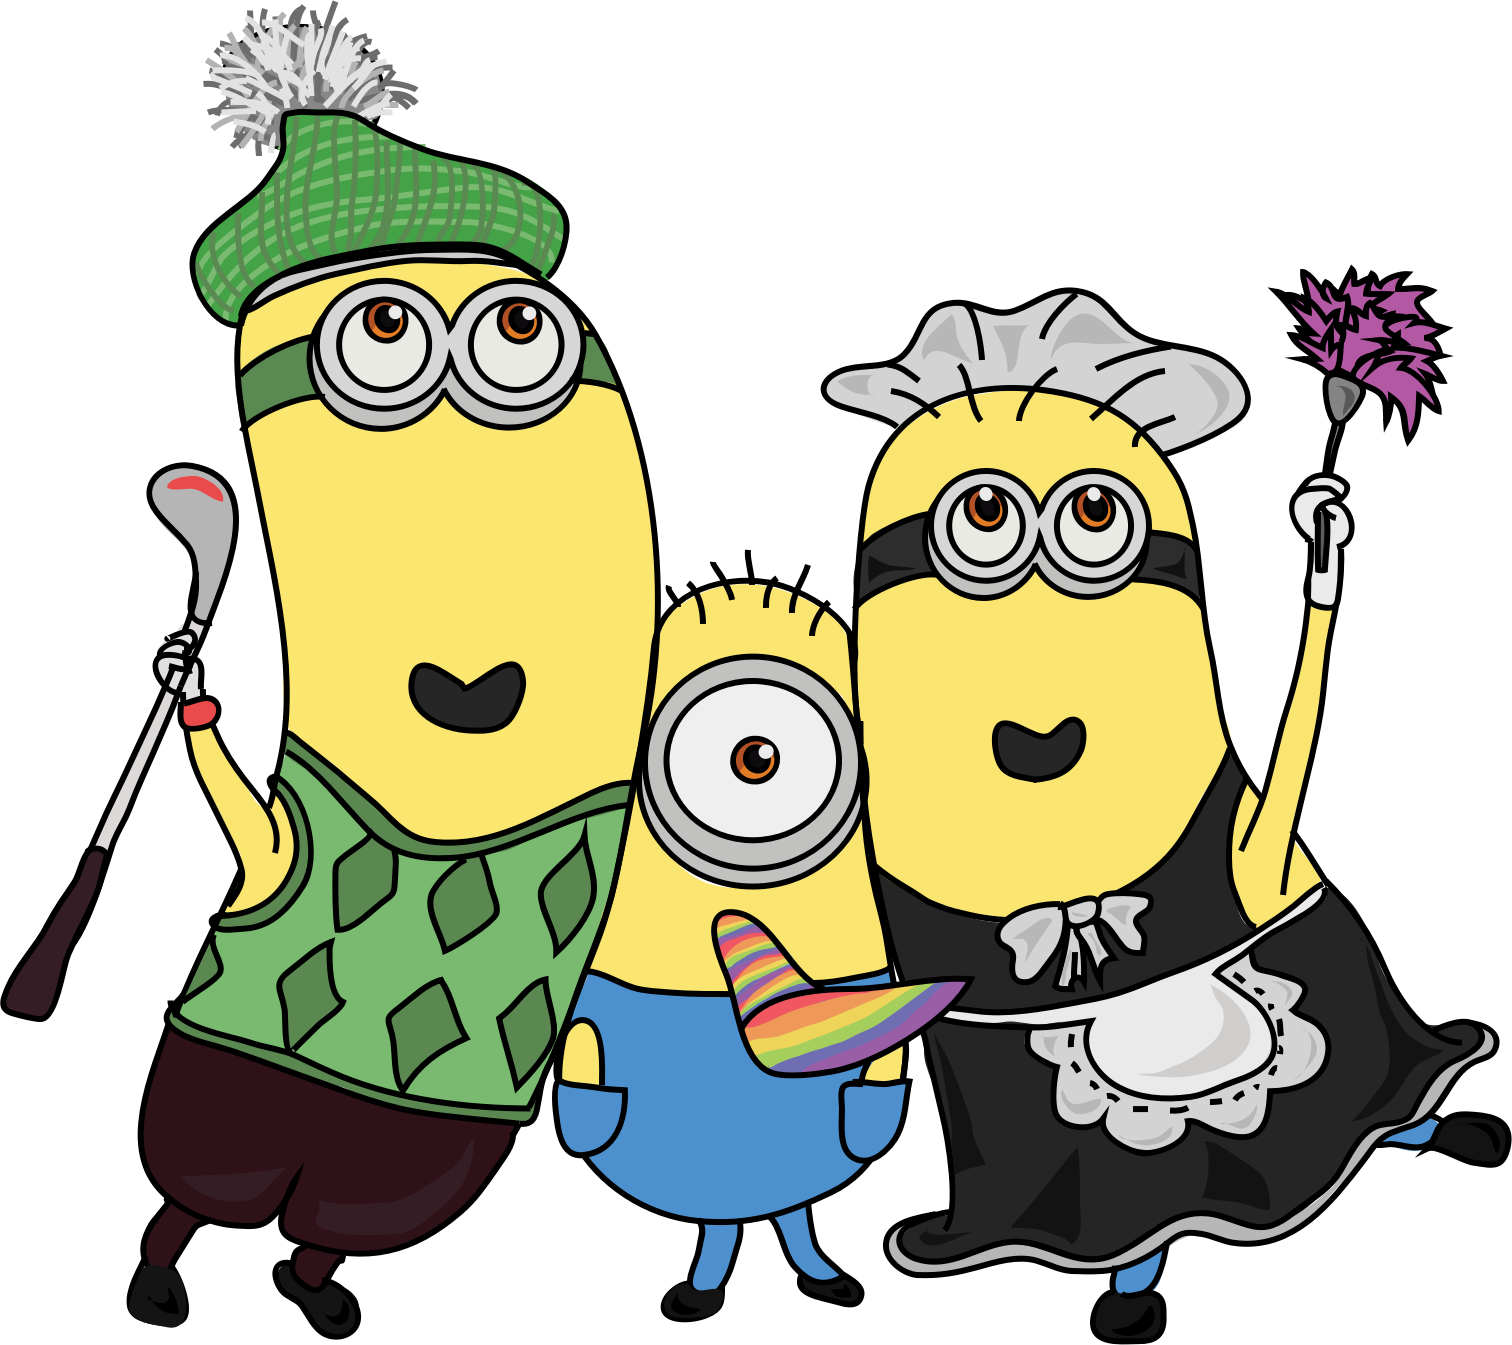 banner freeuse download Clipart minions. Big image png.